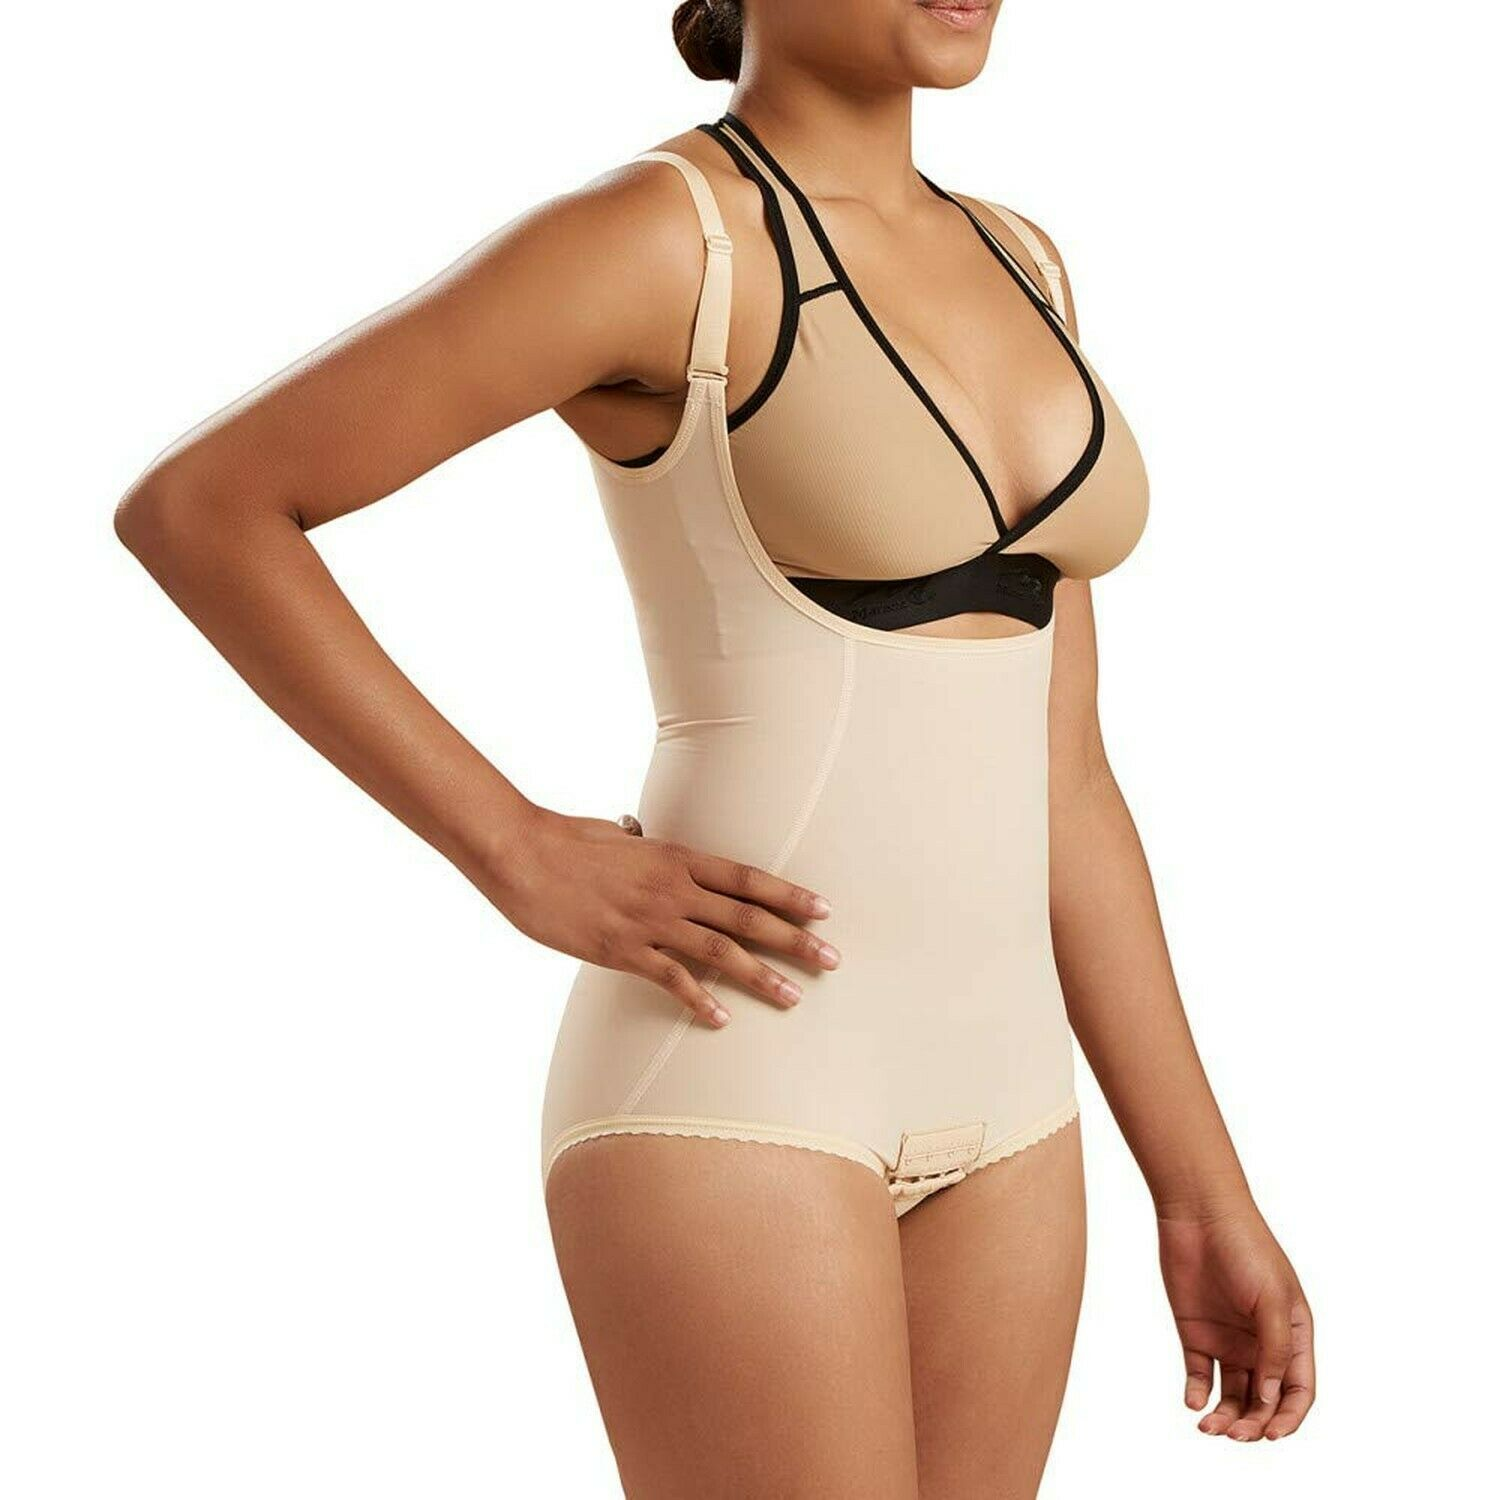 Marena Second Stage Suit with Suspenders and No Leg by Comfortwear FBA2 Beige